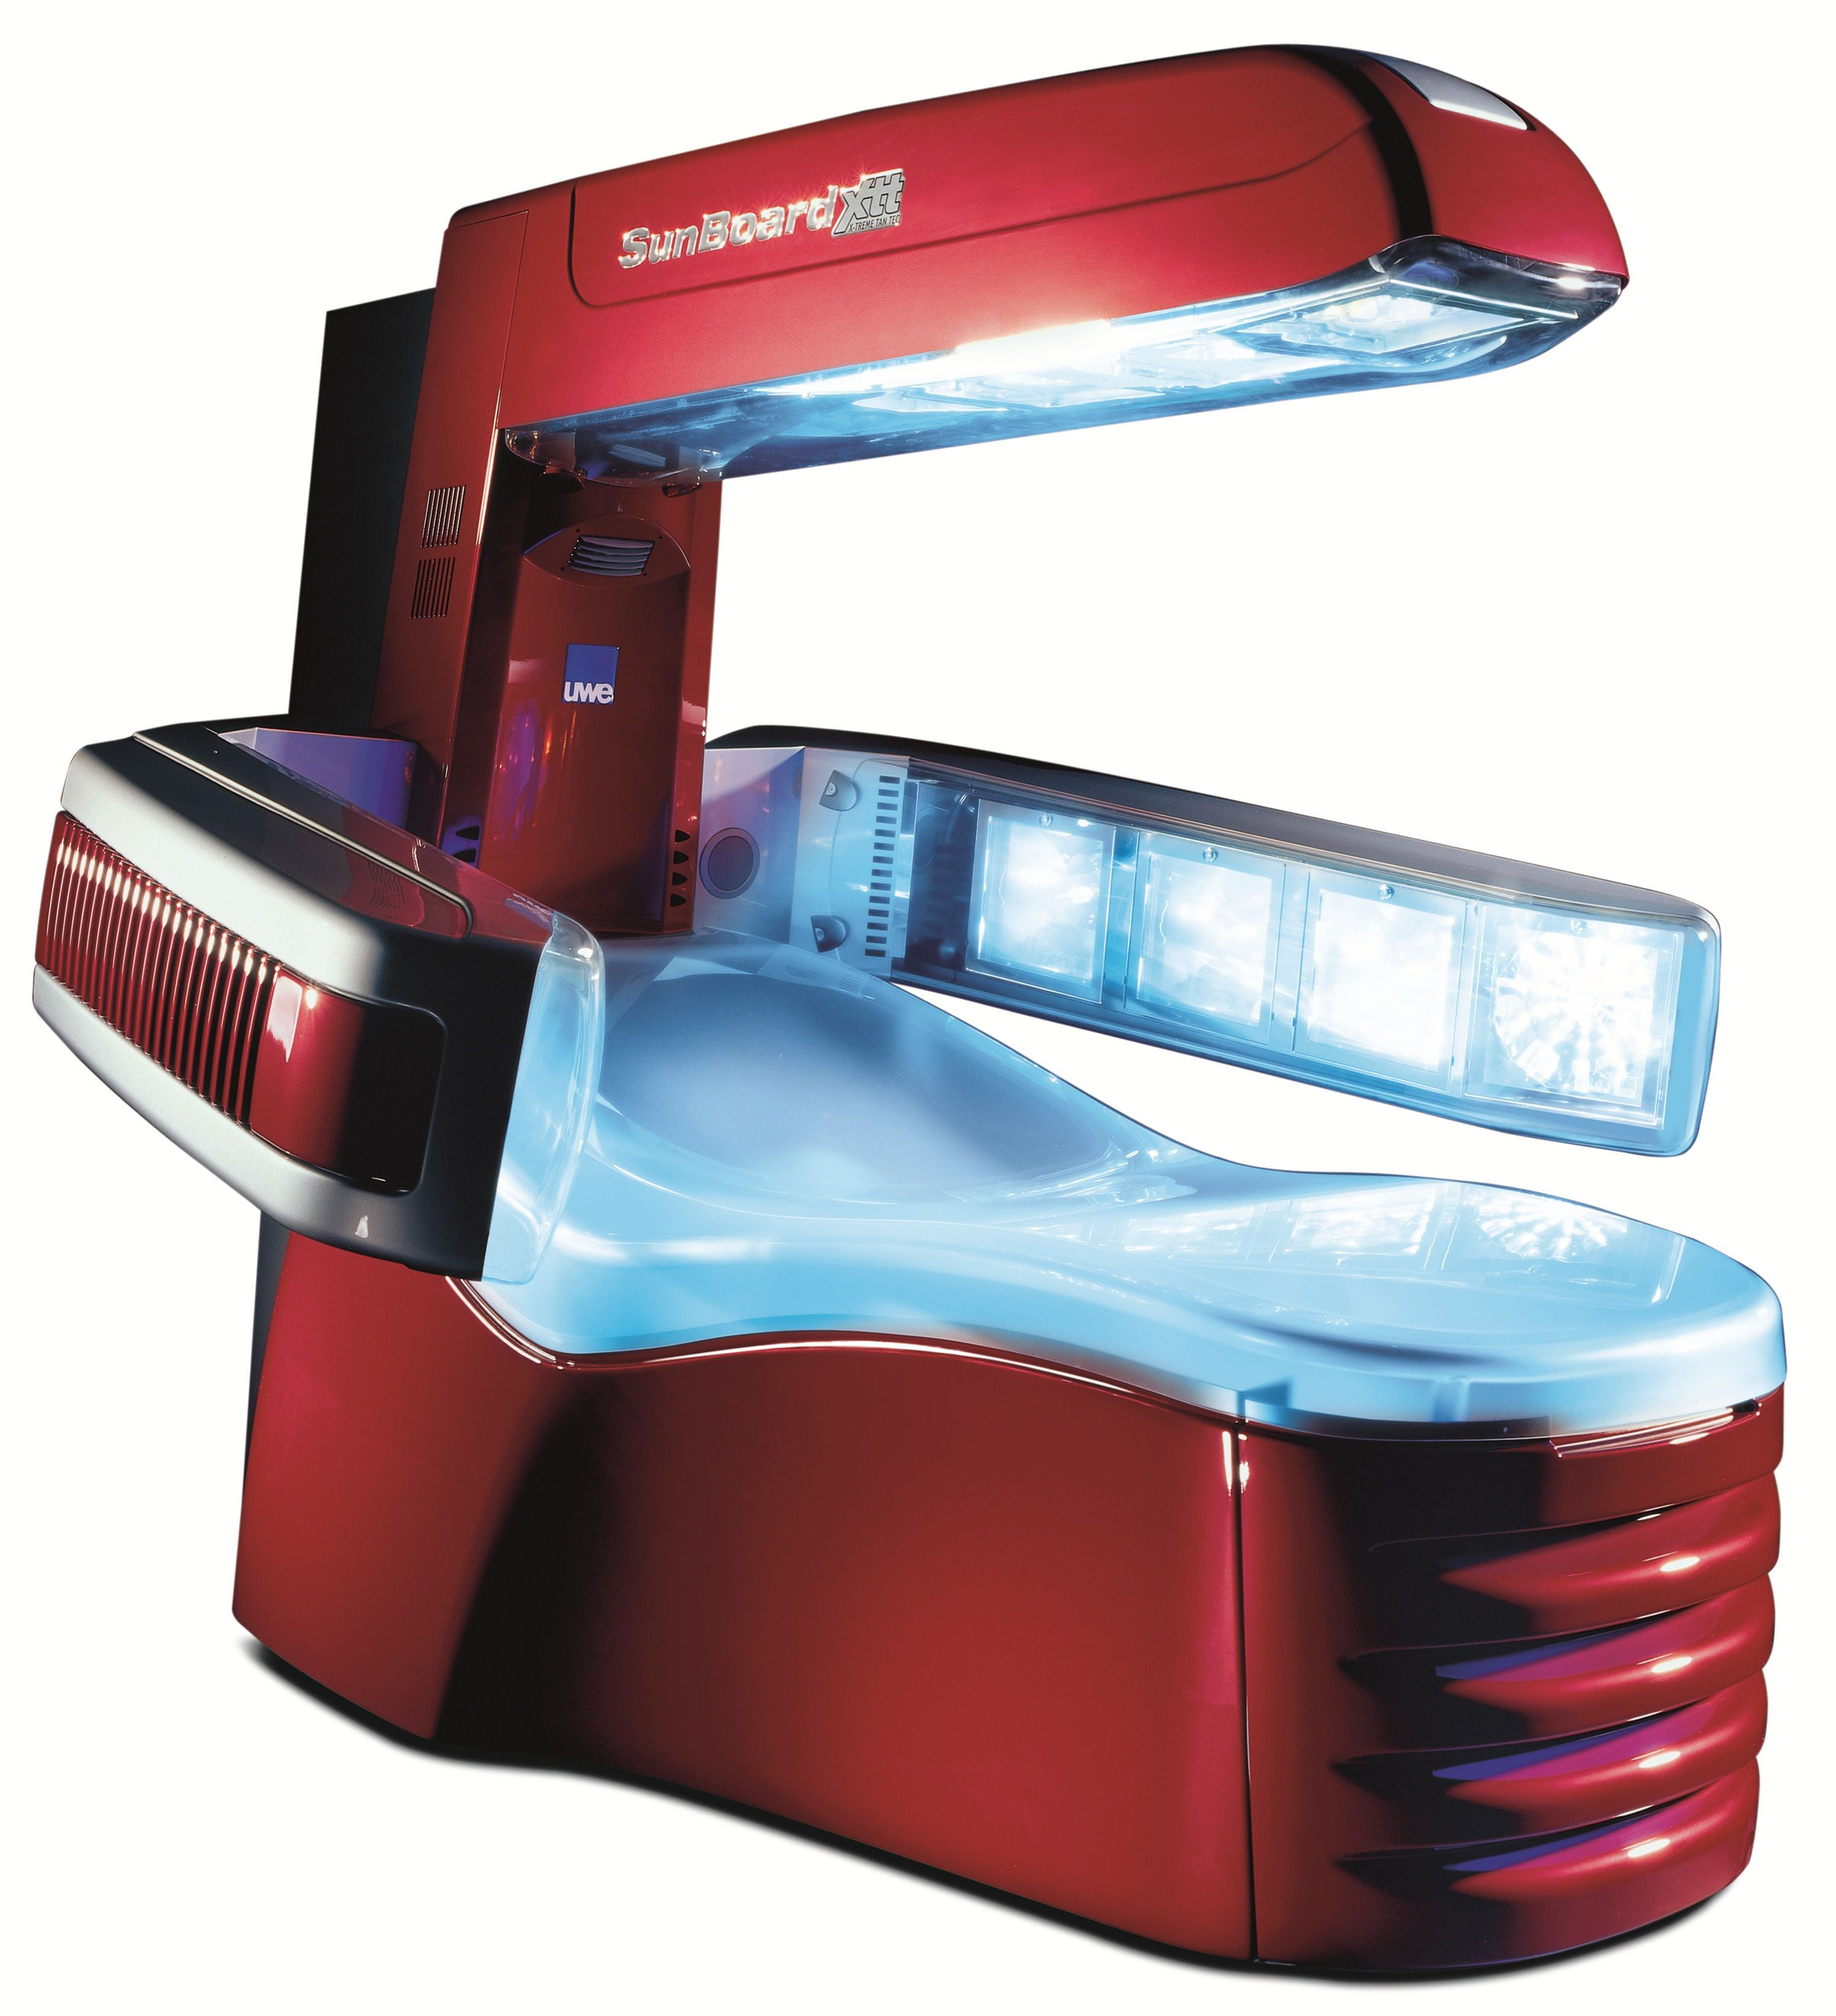 Sunboard XTT by UWE is one of the most fortable tanning beds